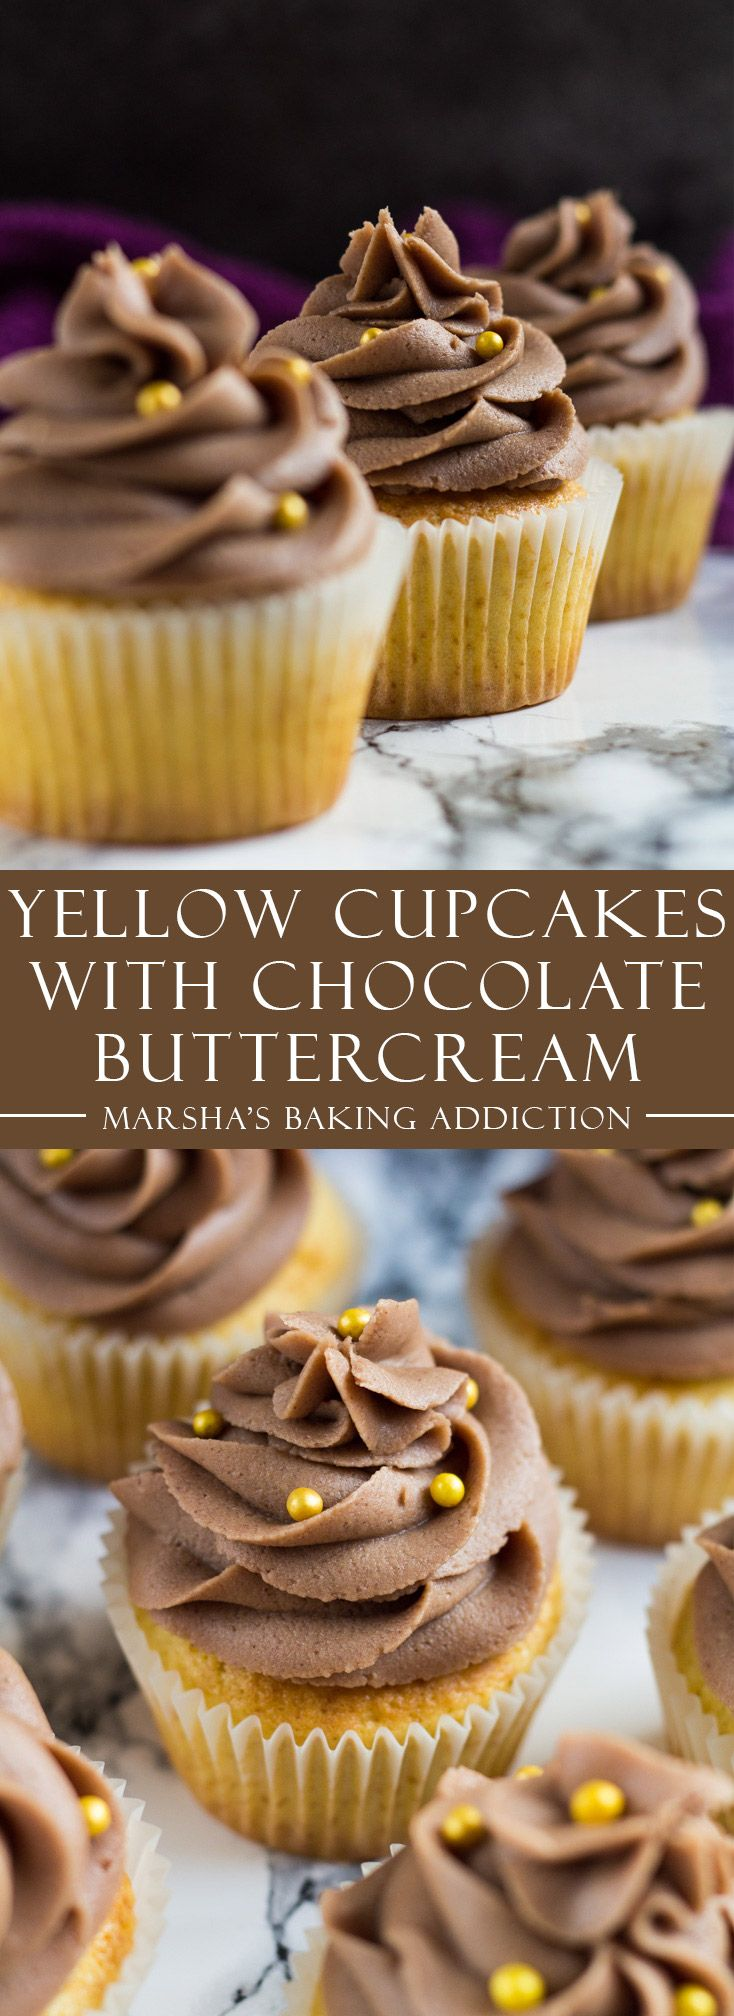 Yellow Cupcakes with Chocolate Buttercream Frosting ...